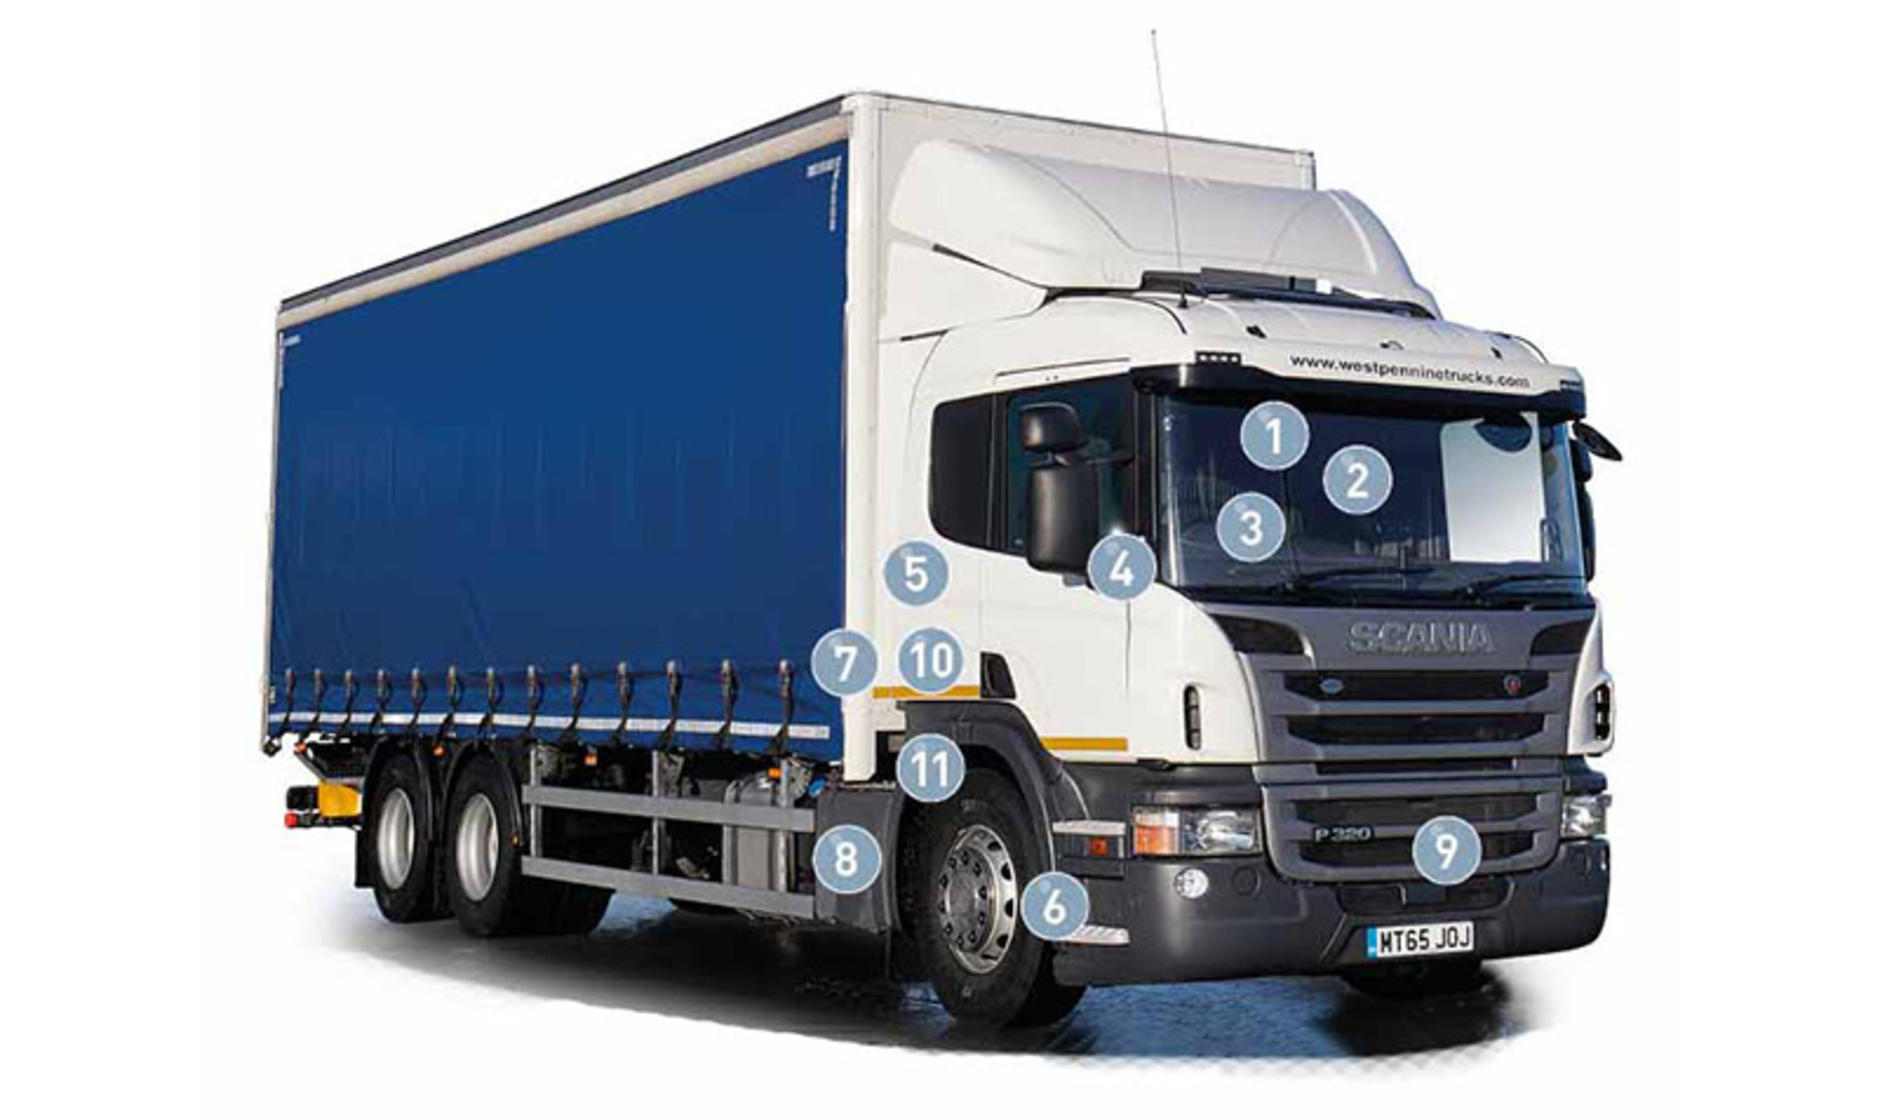 Wiring Diagram For Hgv Trailers